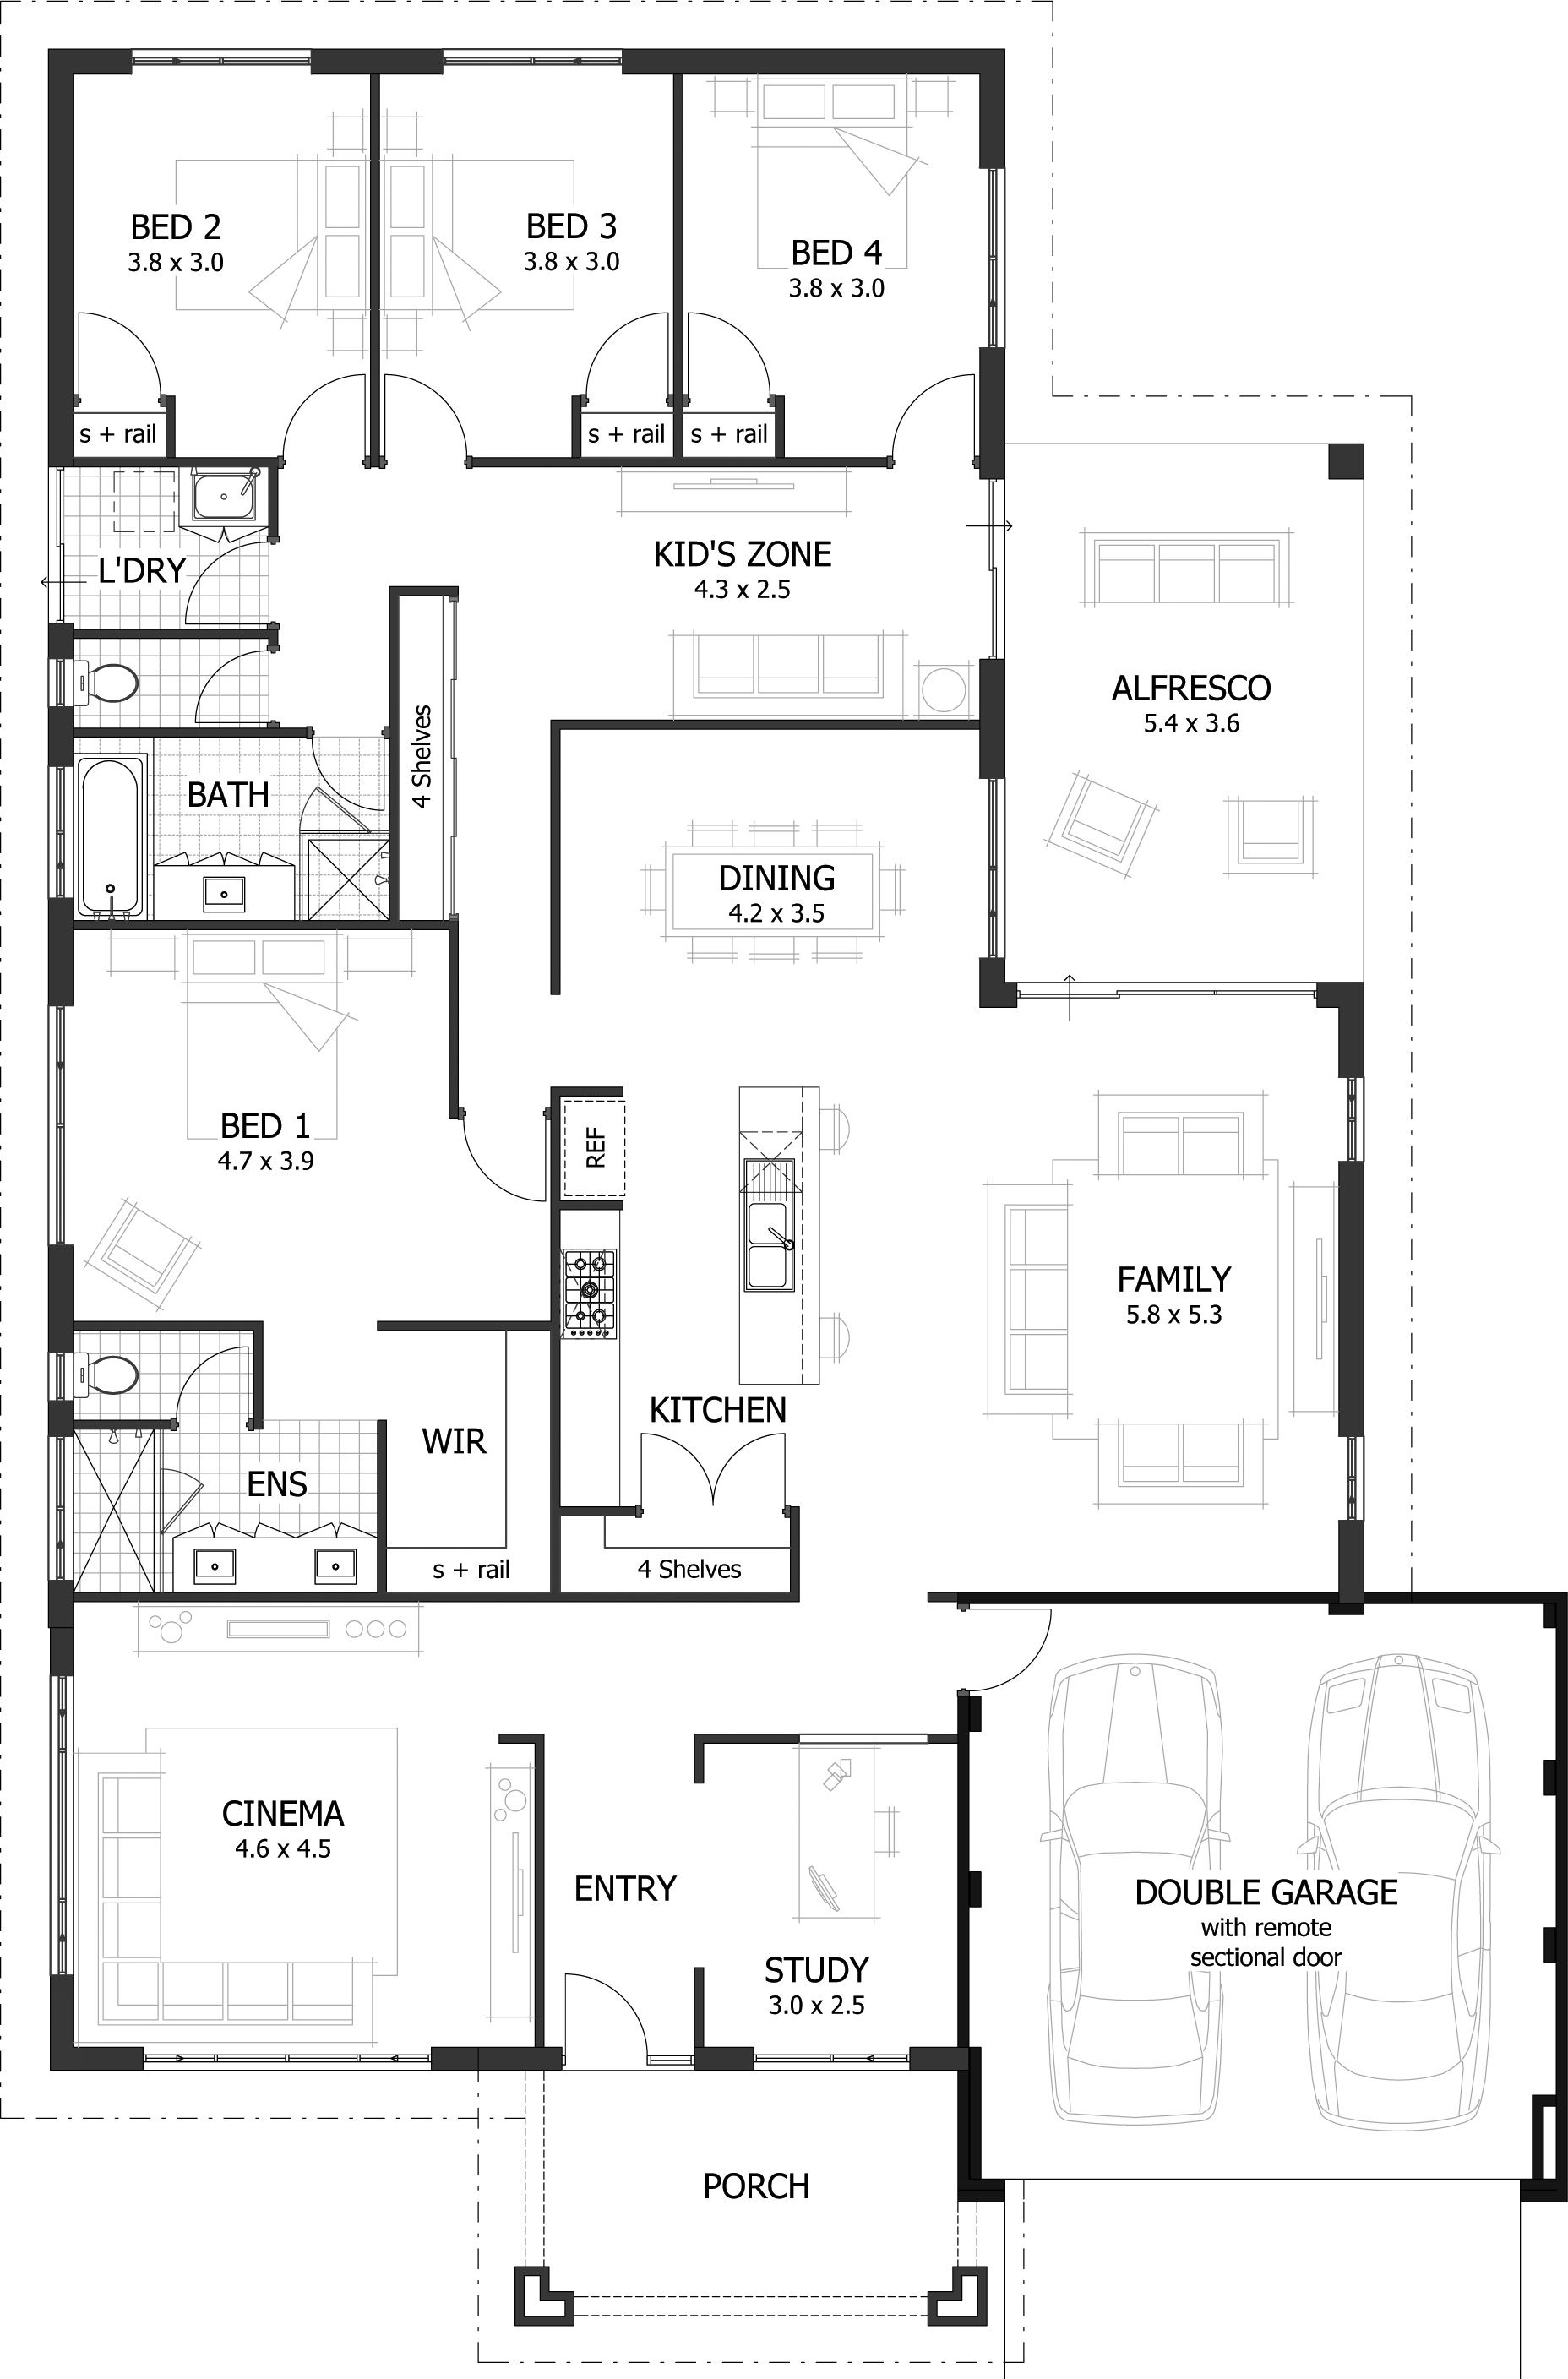 4 Bedroom House Plans Home Designs Cele Tion Homes